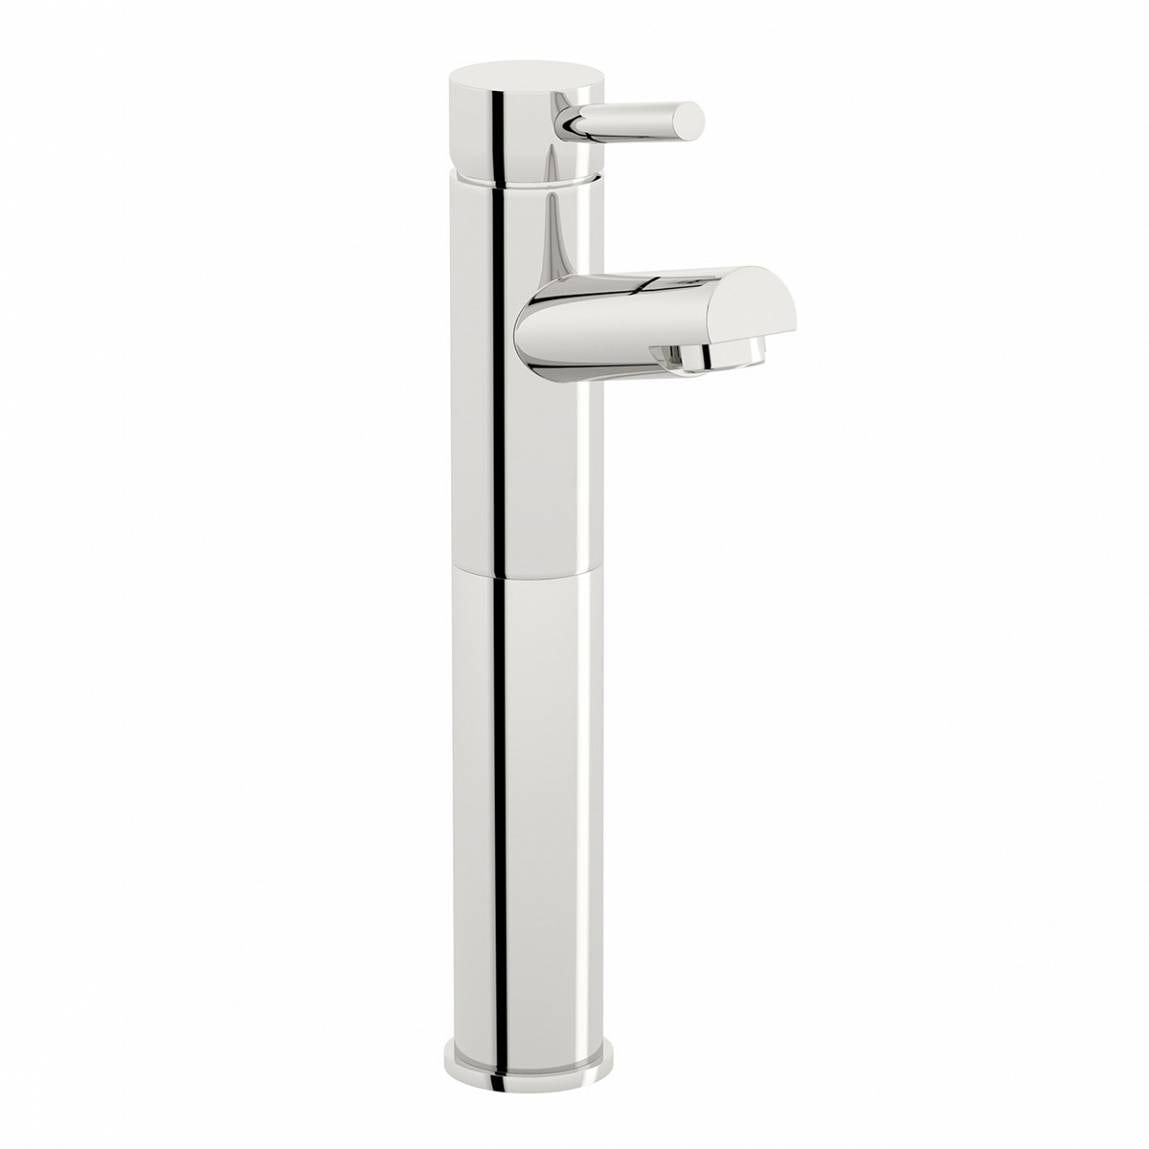 Orchard Wharfe high rise countertop basin mixer tap offer pack